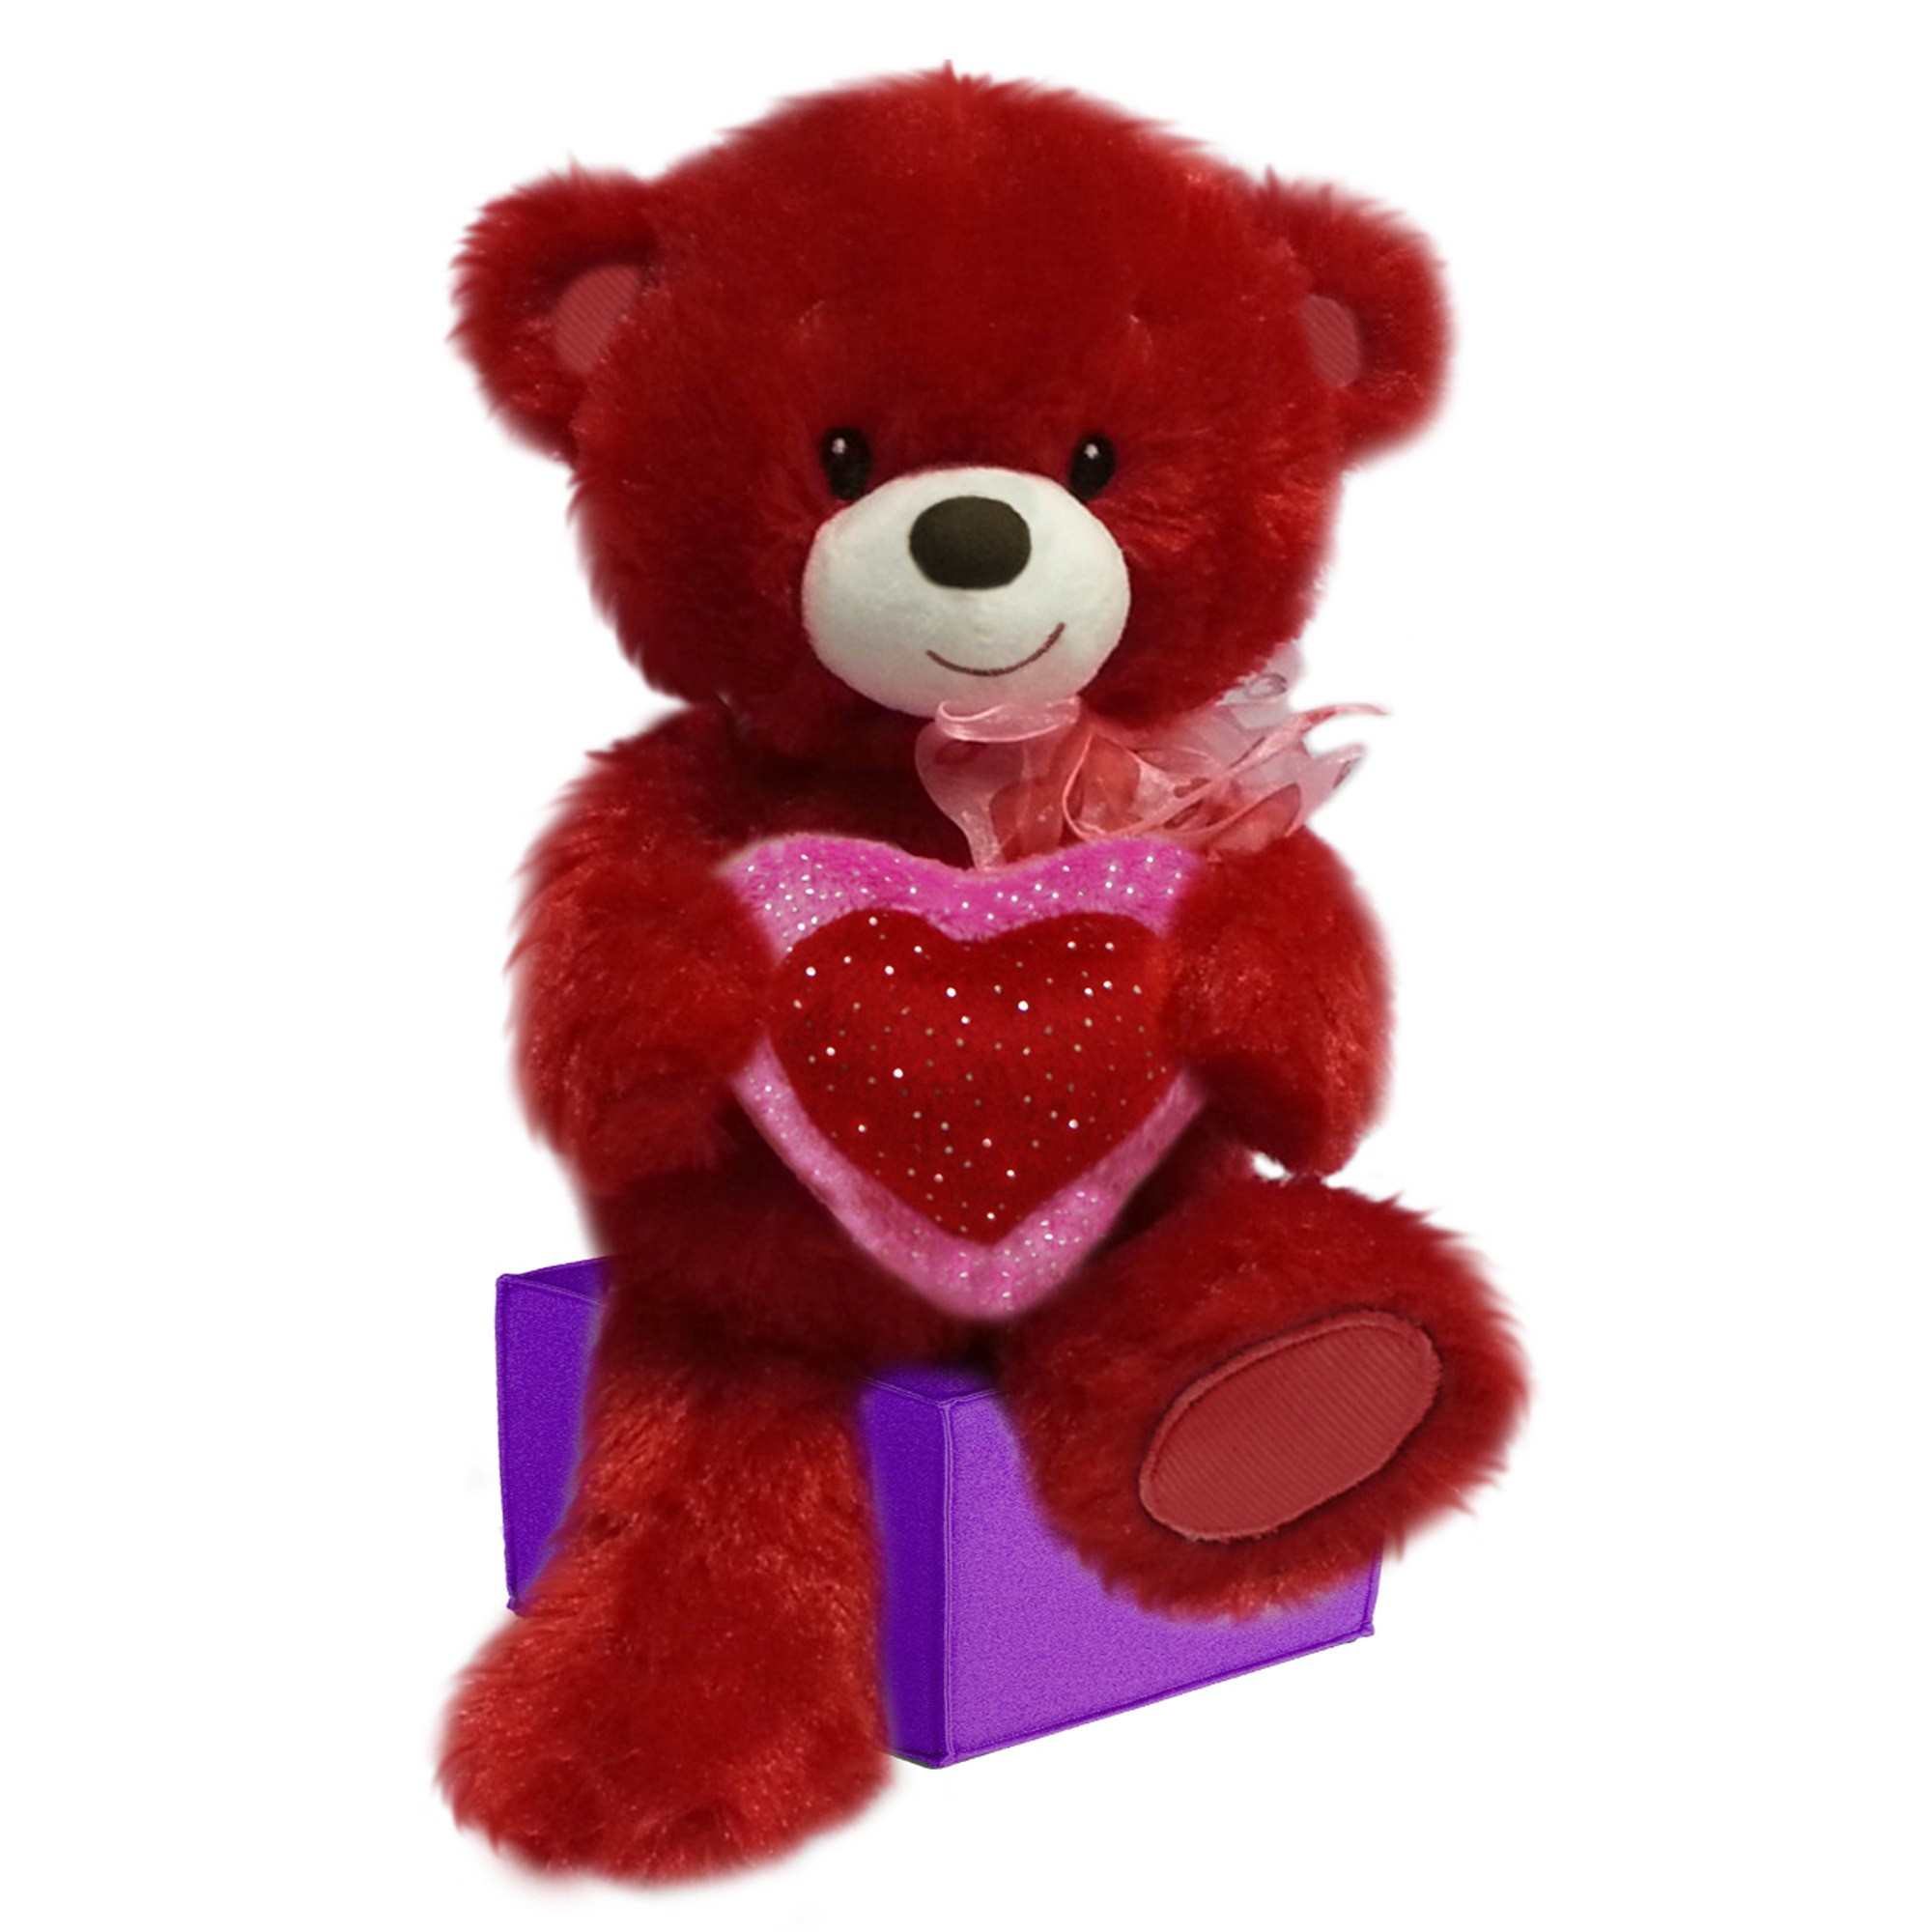 First and Main - 10 Inch Red Lovey Cuddleup Plush